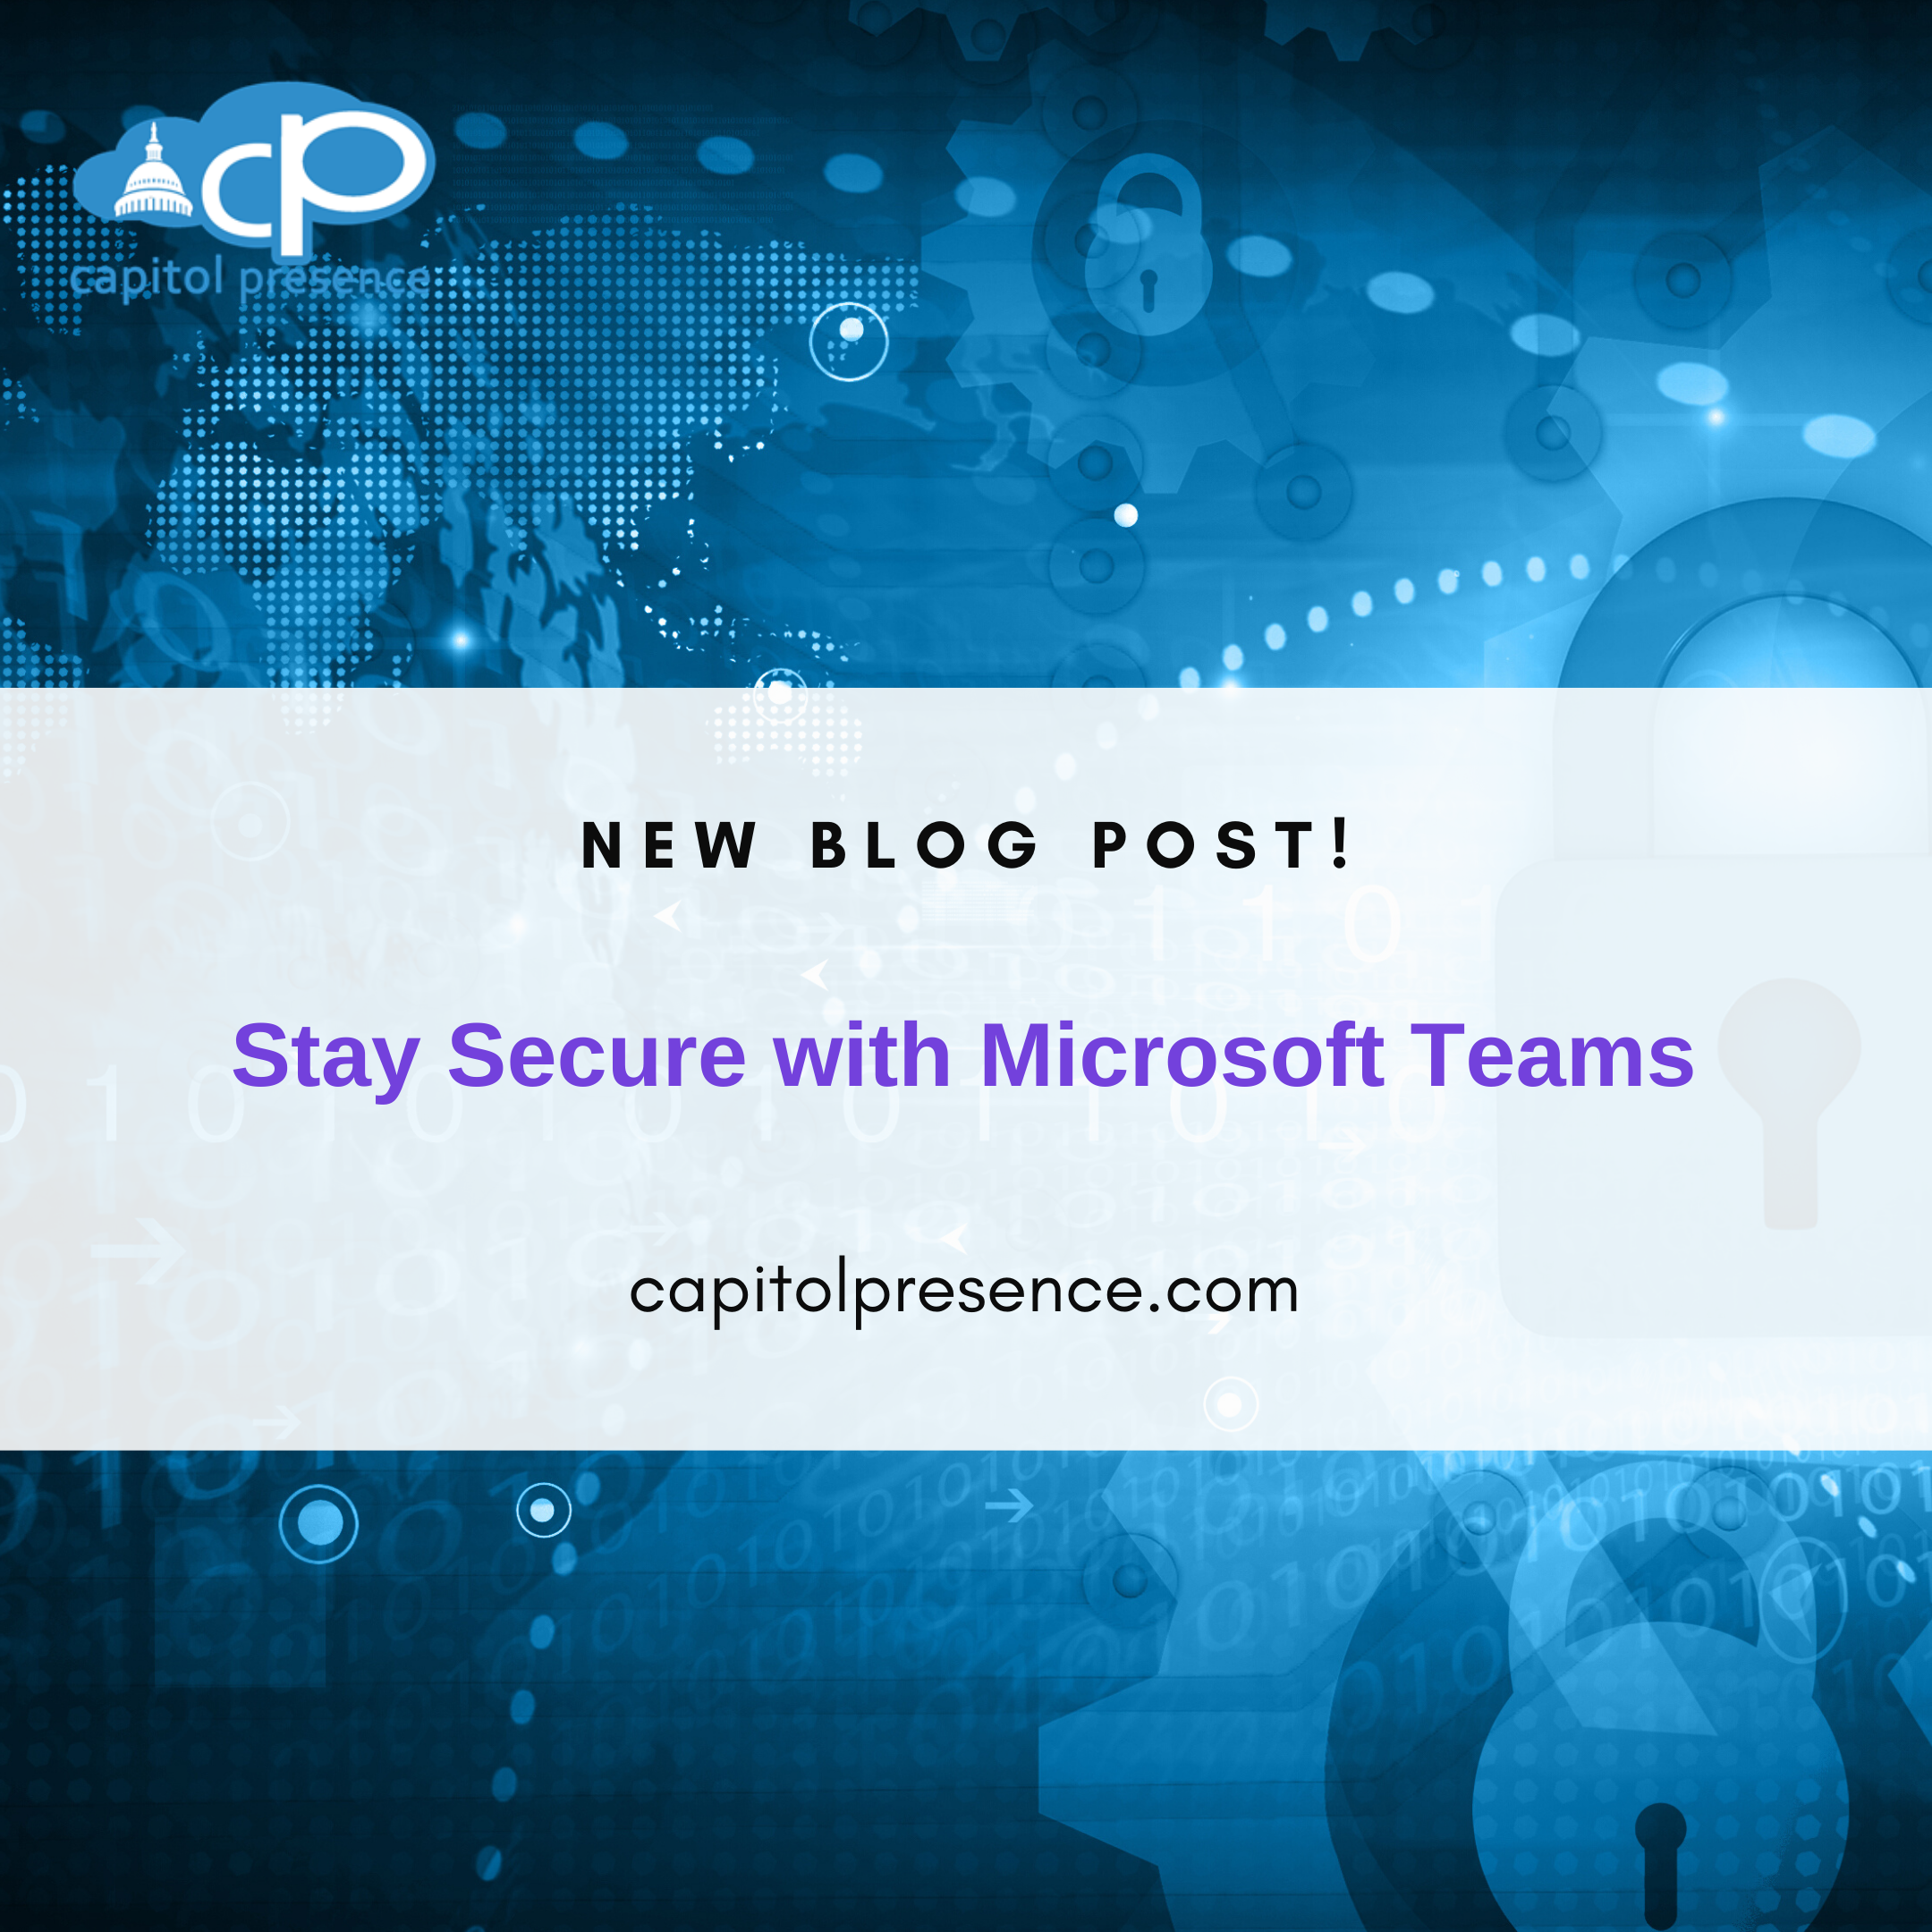 Stay Secure with Microsoft Teams